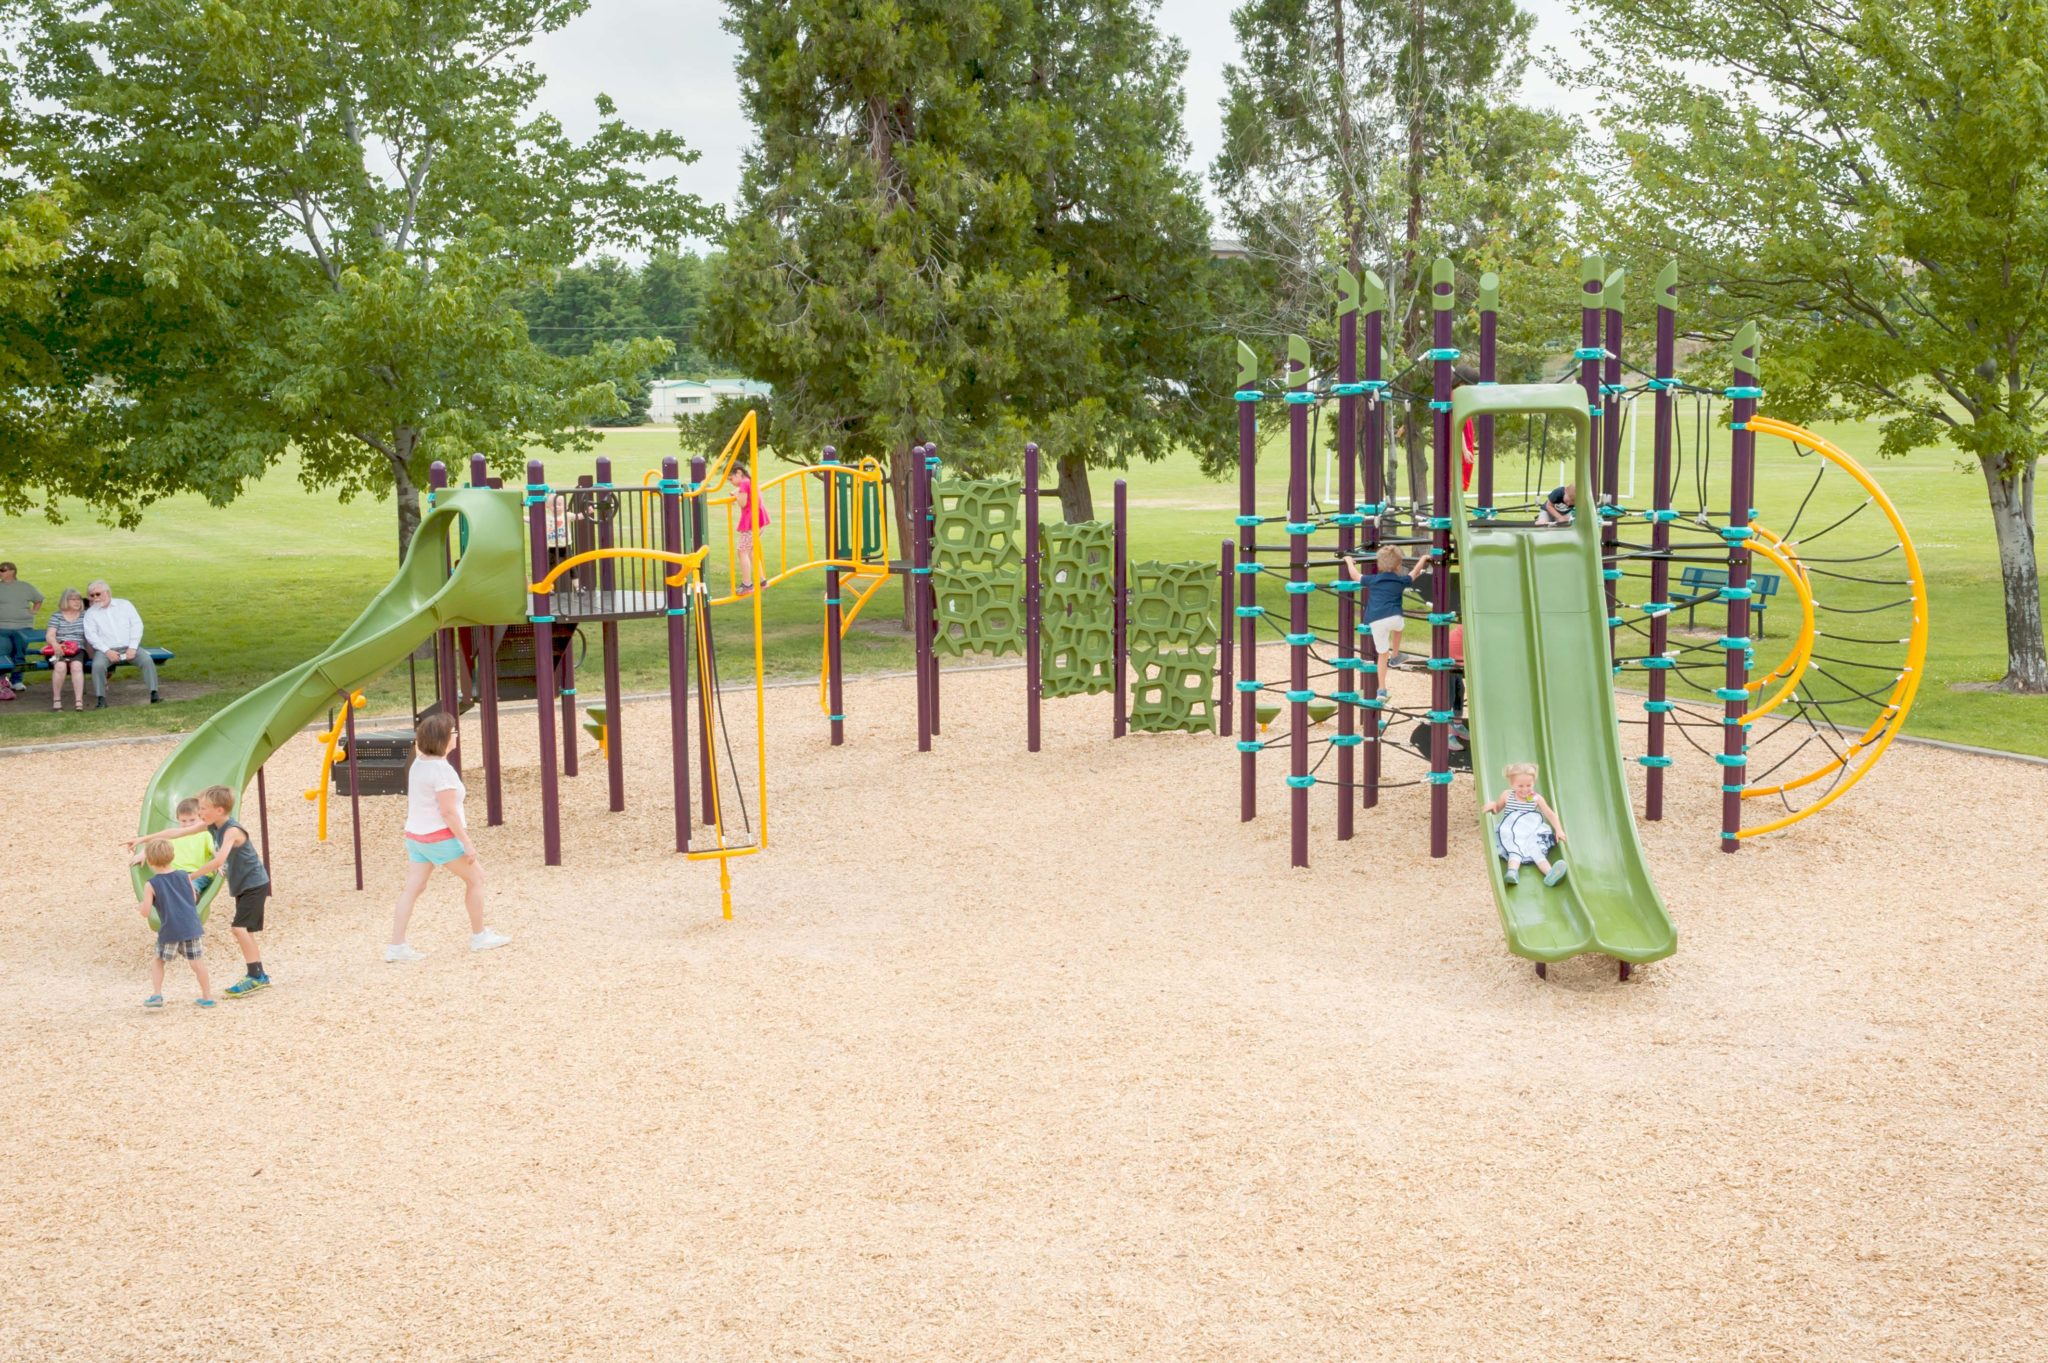 washington state commercial playground equipment - Commercial Playground Equipment